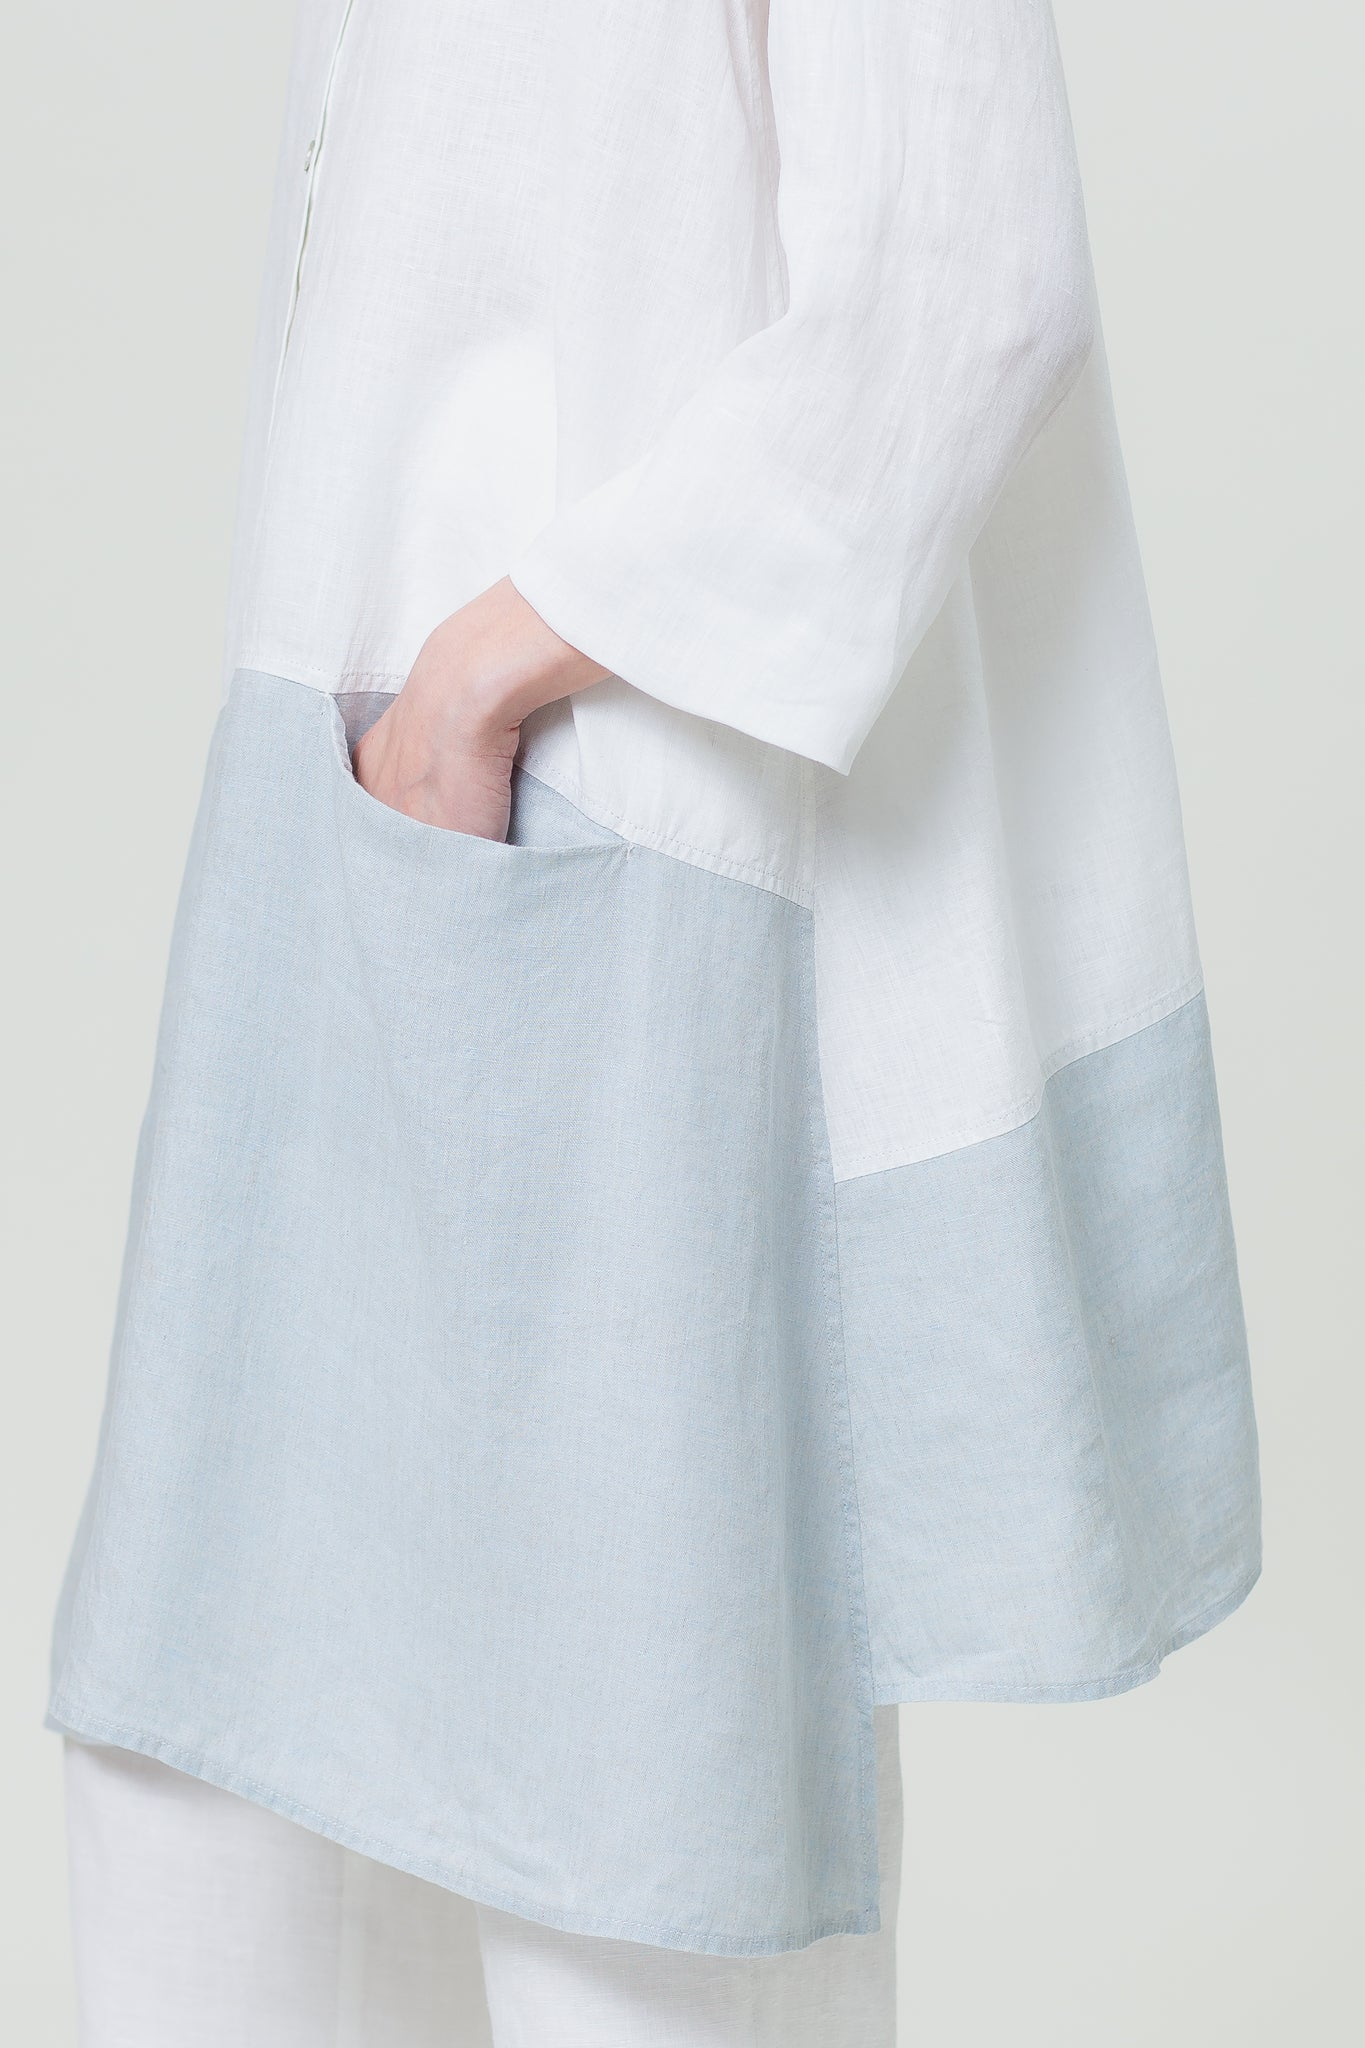 Linen Shirt IEVA white and sky blue